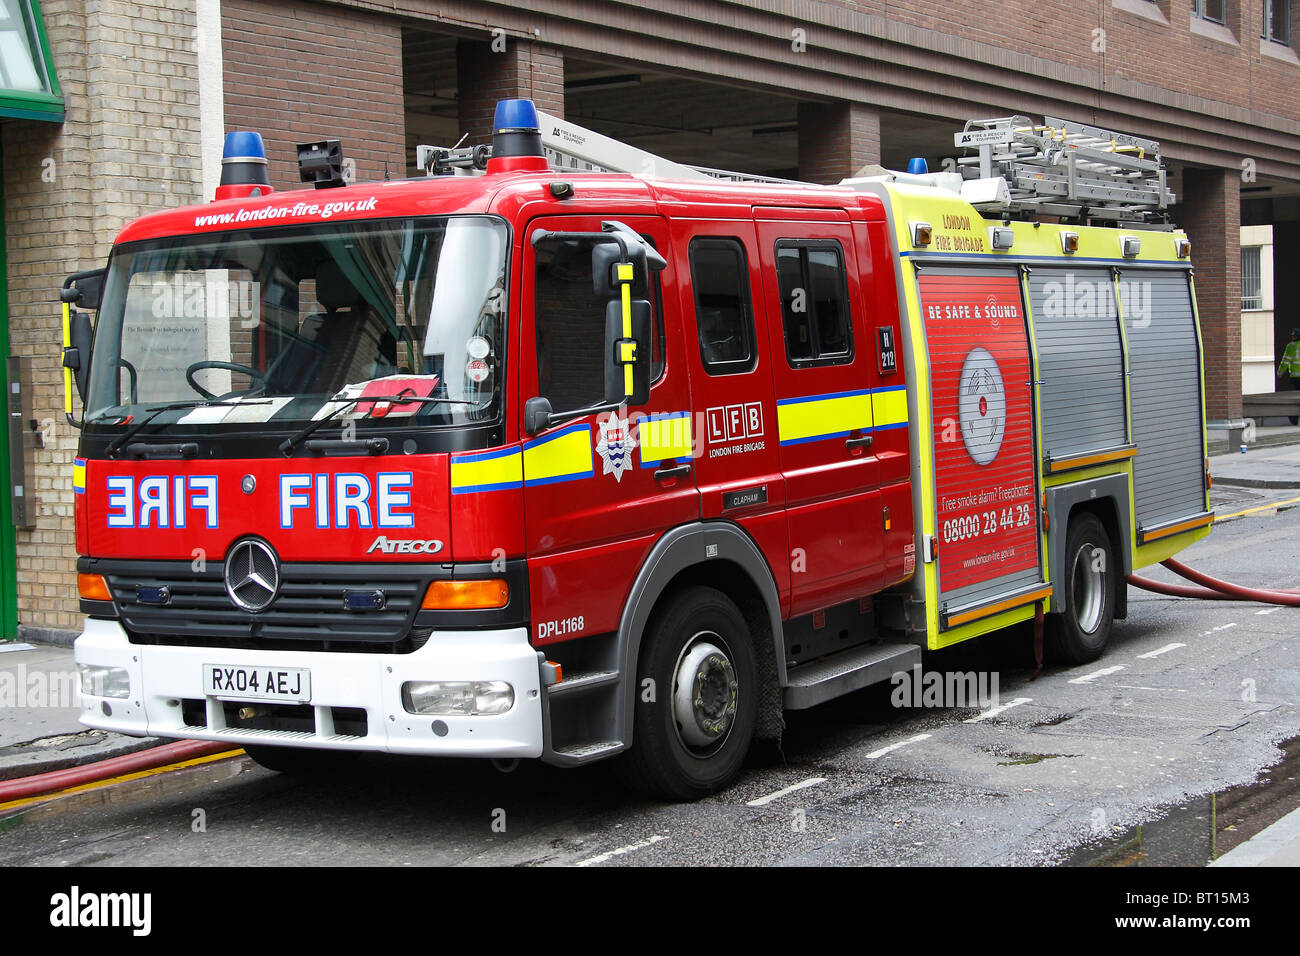 london fire brigade fire engine asset co stock photo 31988547 alamy